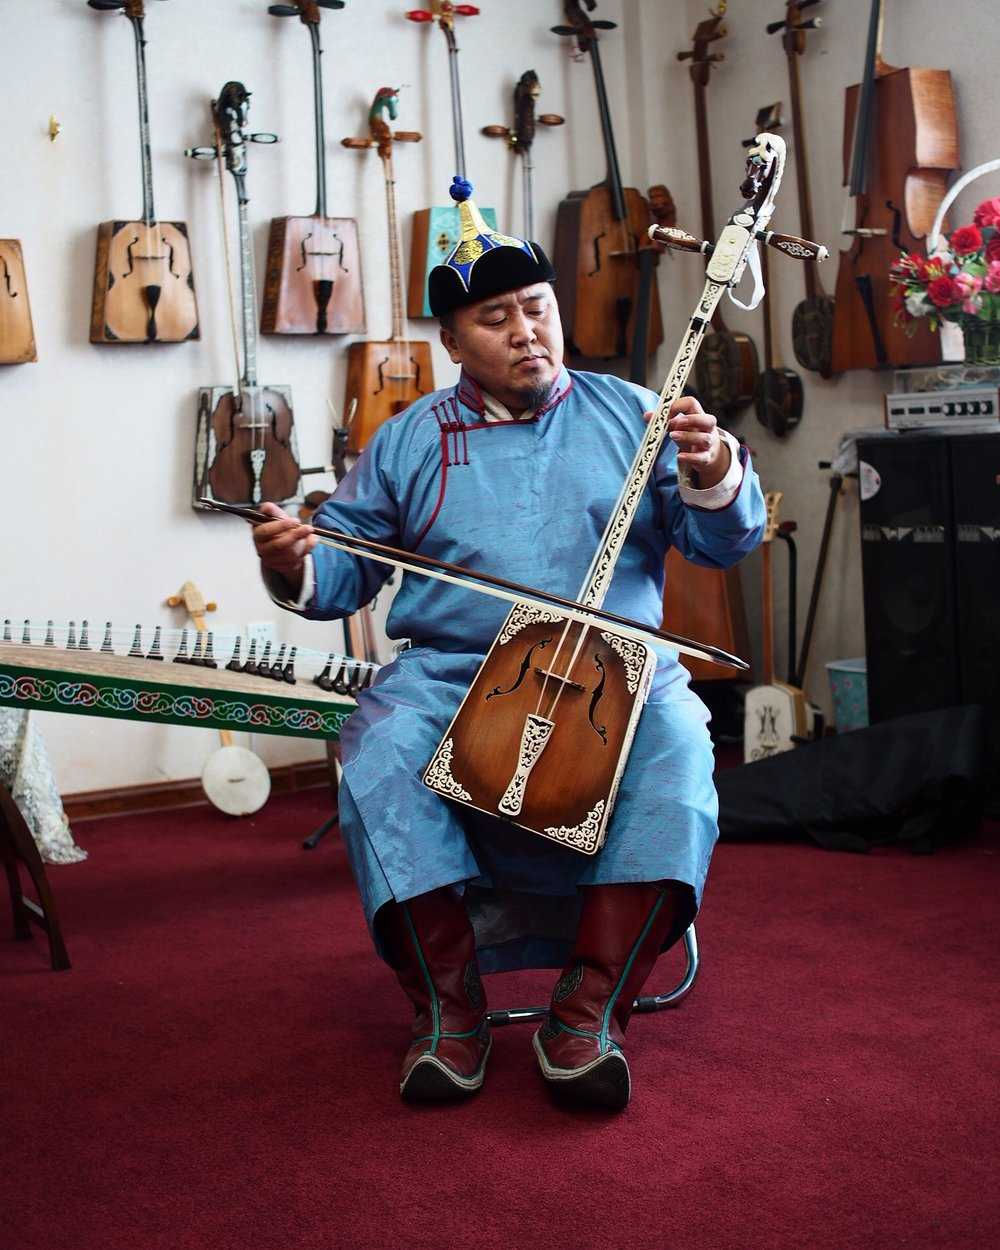 Batzorig playing the morin khuur.